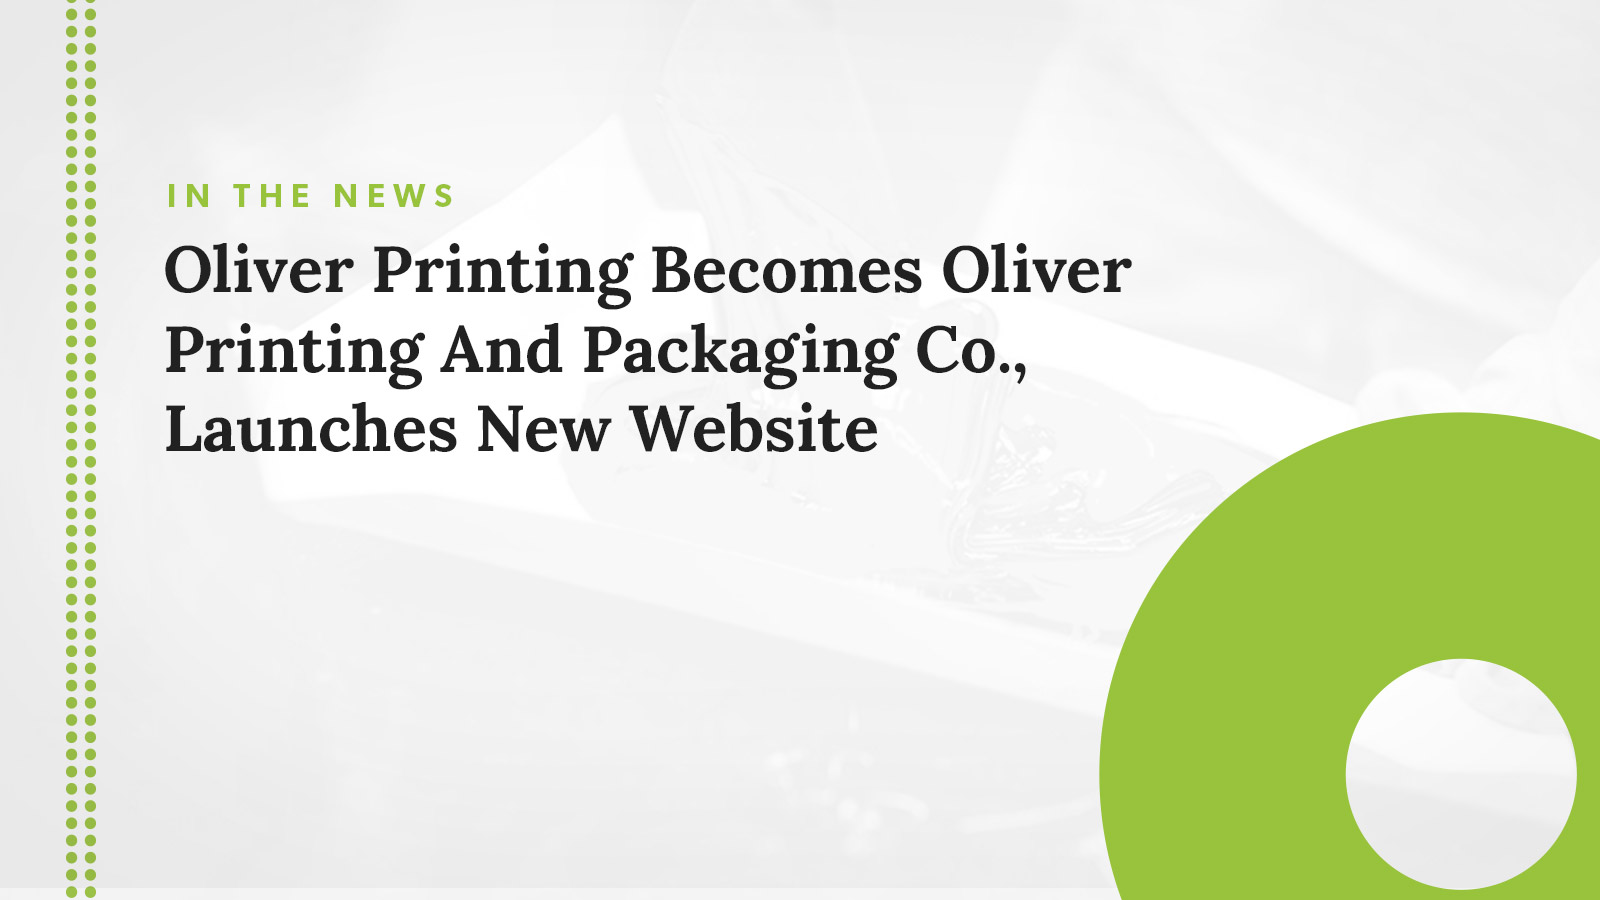 Oliver Printing Becomes Oliver Printing and Packaging Co., Launches New Website